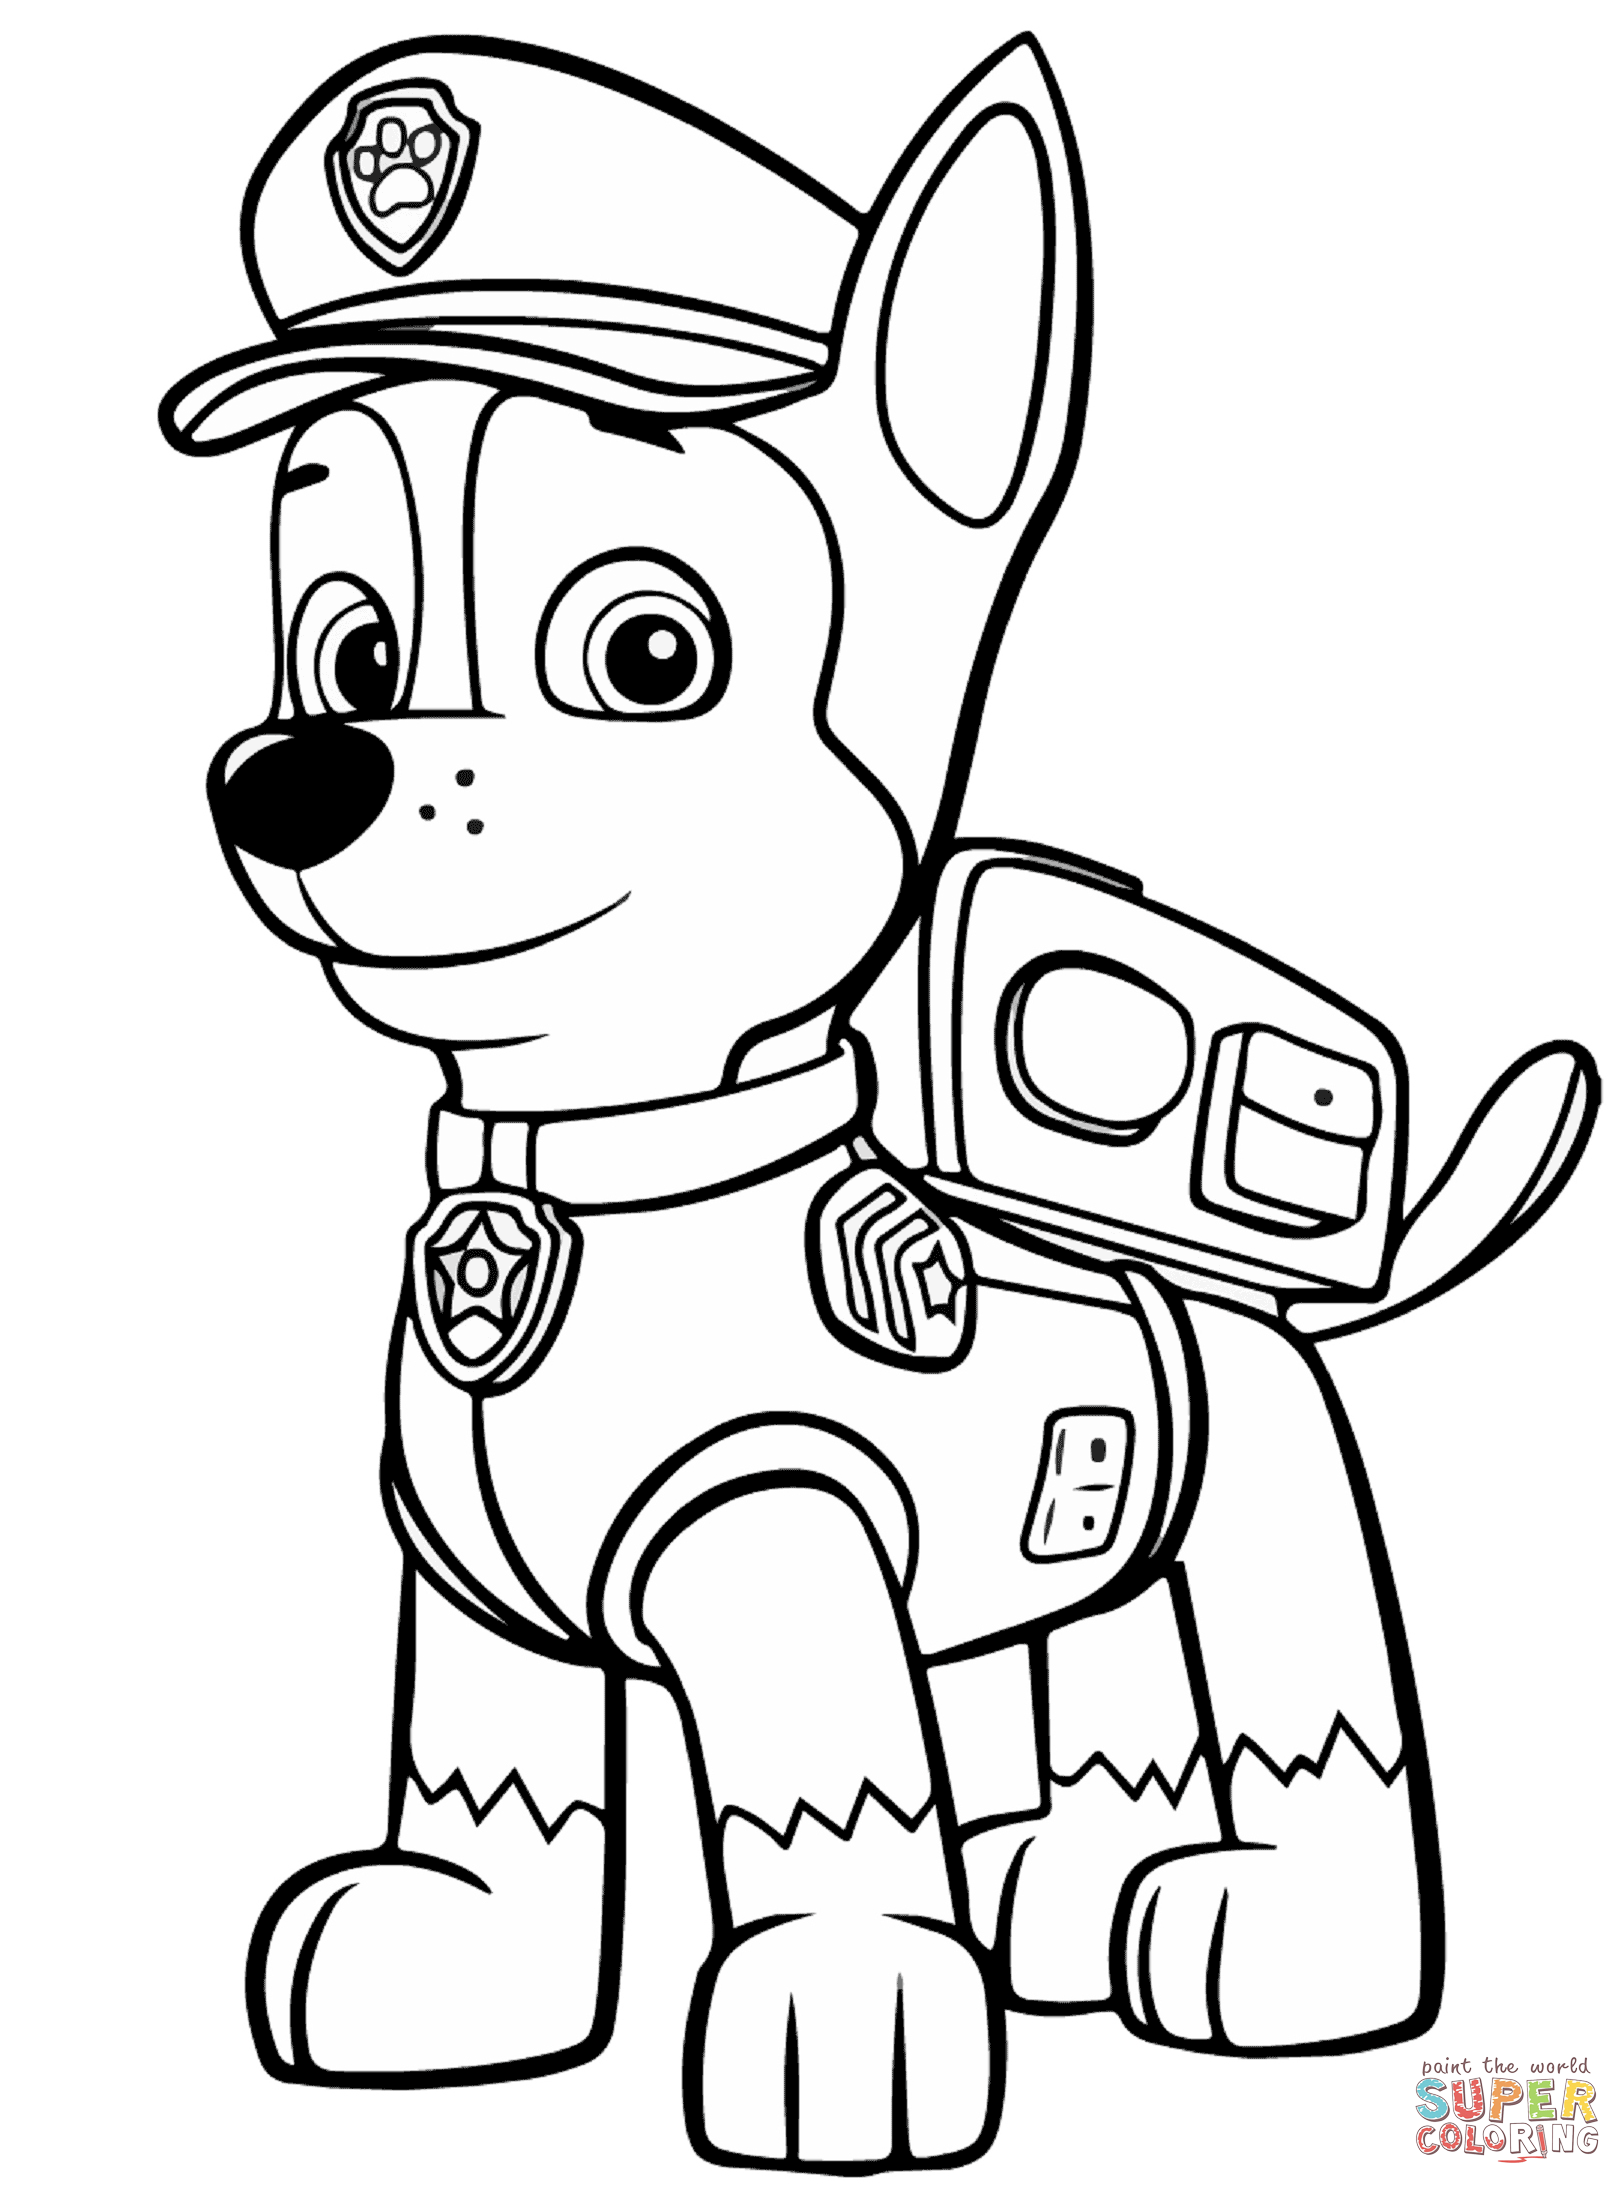 Chase coloring #12, Download drawings